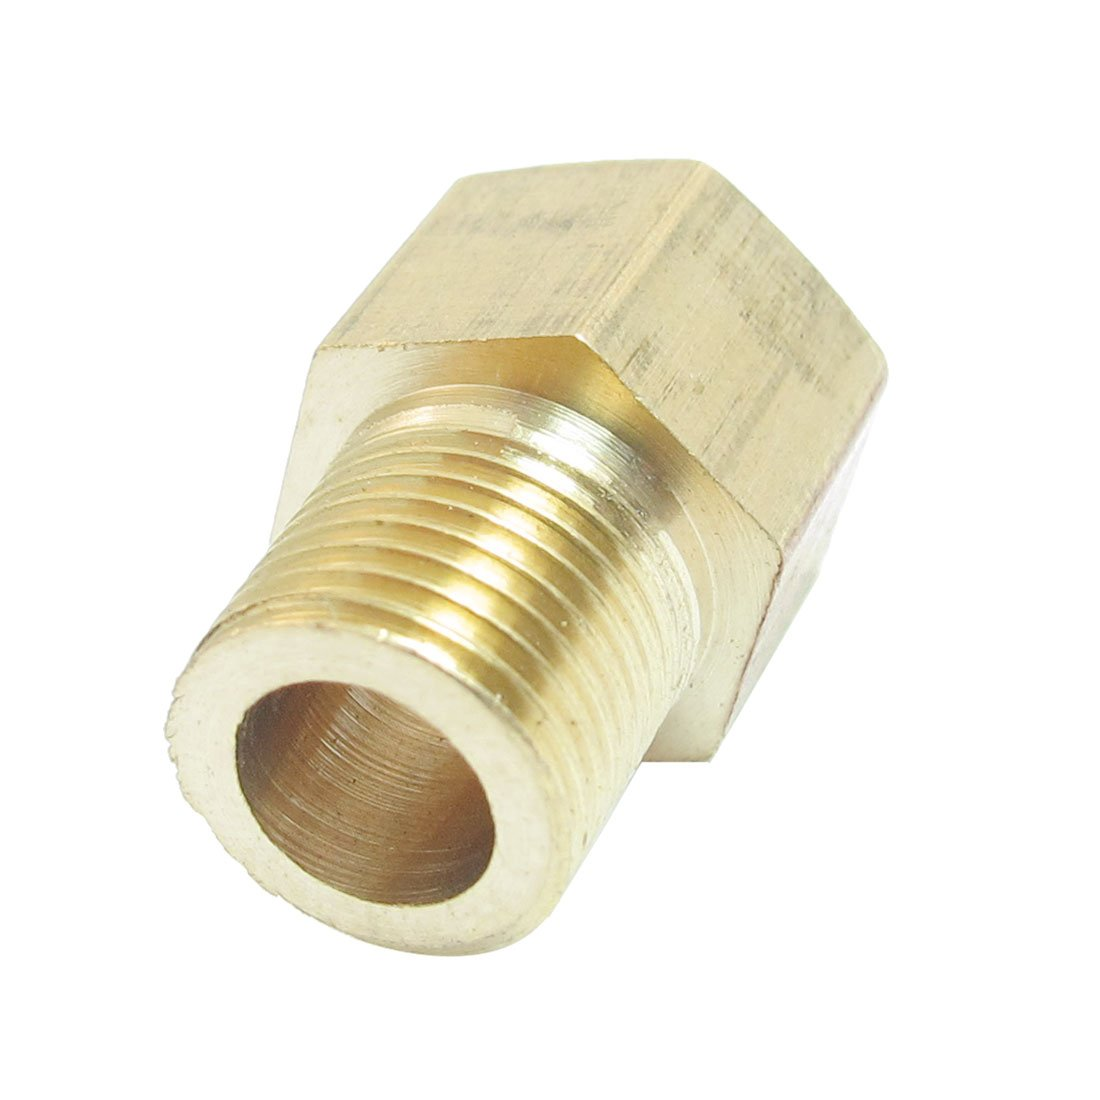 uxcell 1//8 inches PT x 1//8 inches NPT Thread Brass Straight Hex Nipples Pipe Reducer Connector